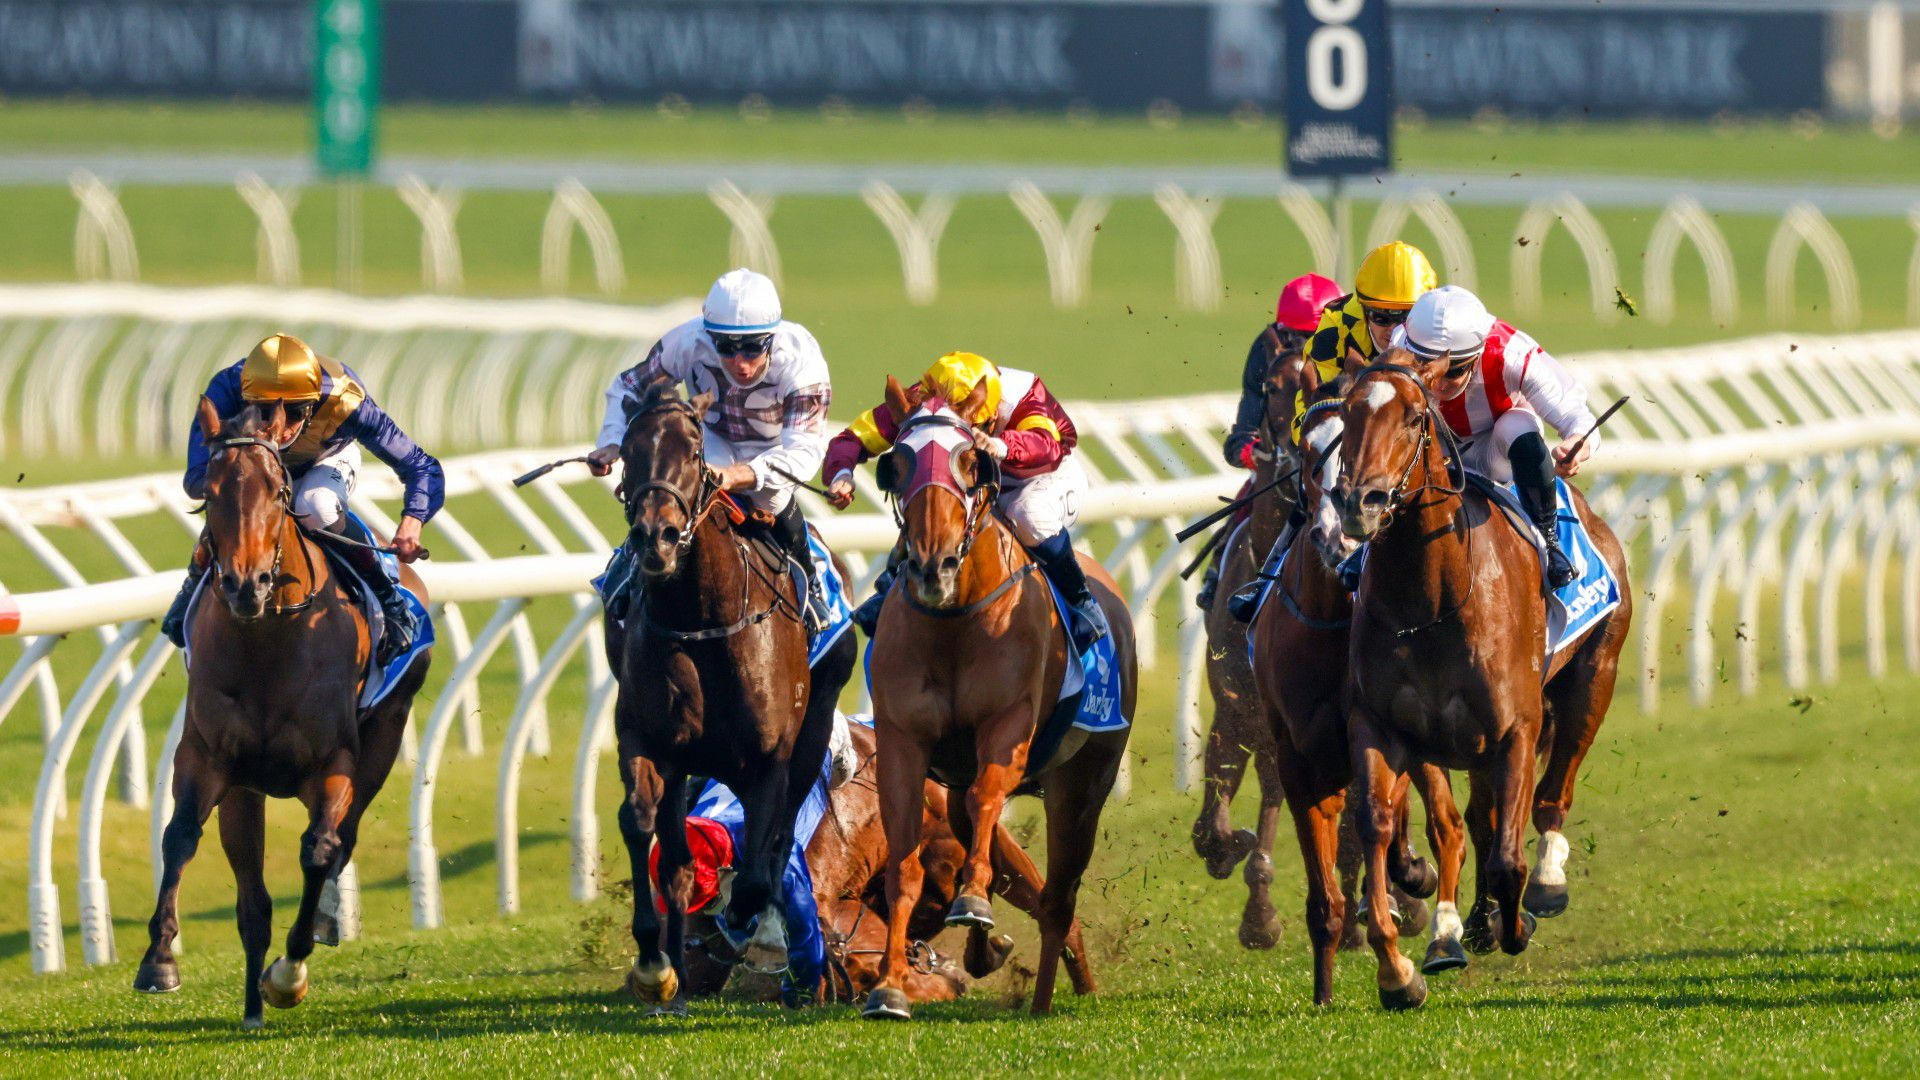 Horse euthanised and jockey in hospital after fall at Royal Randwick